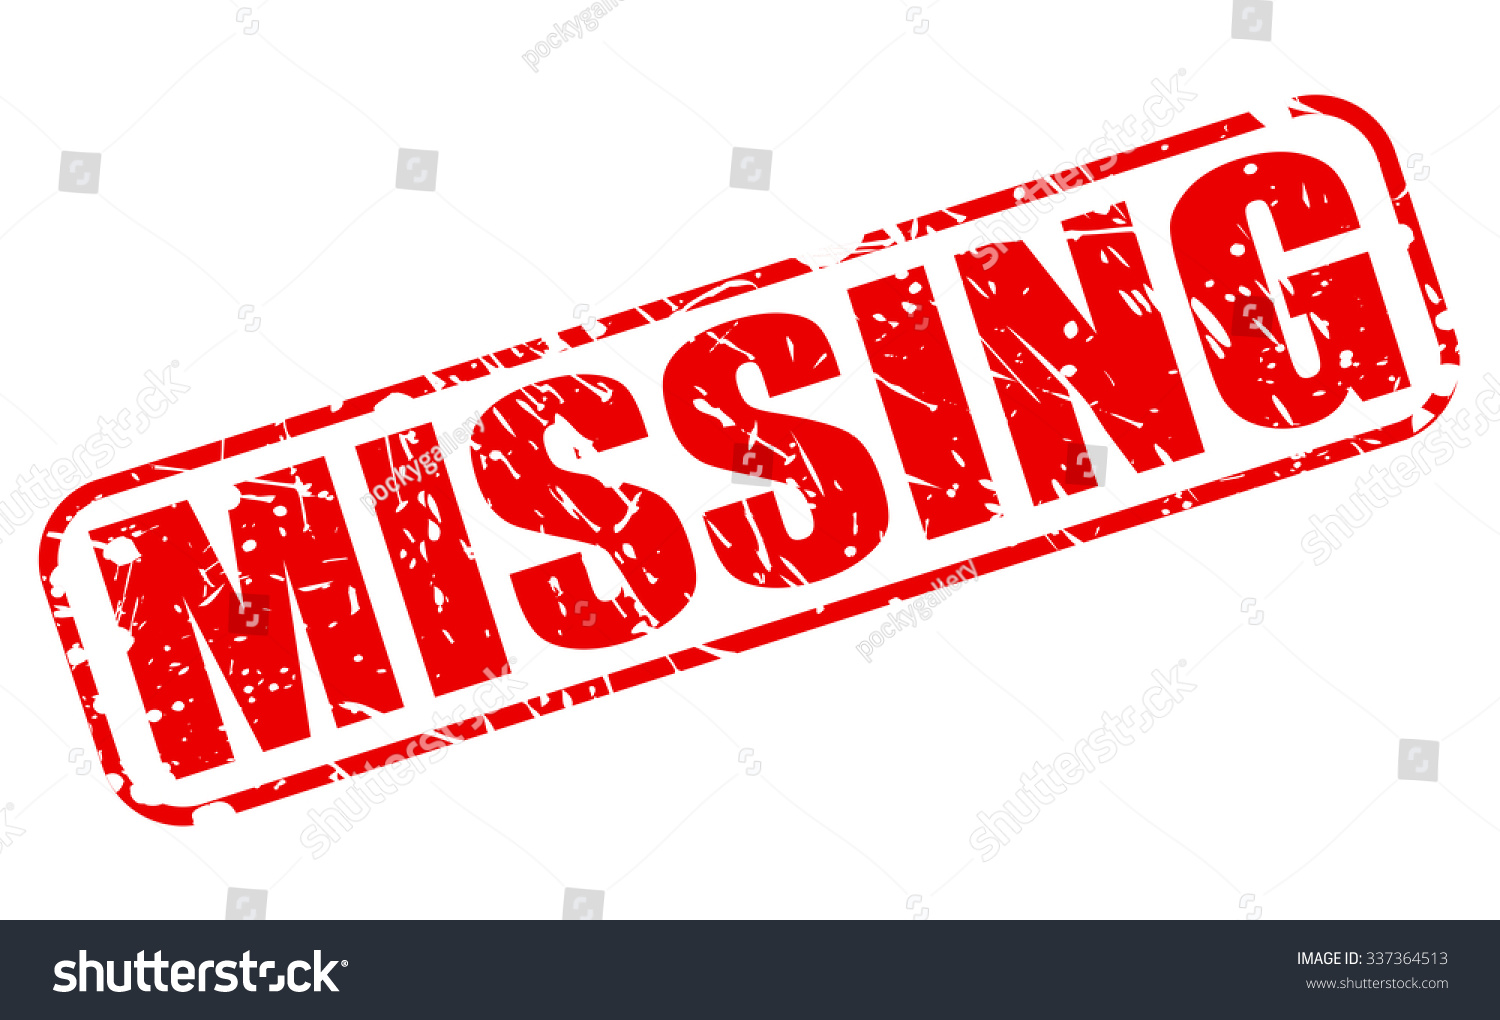 missing - DriverLayer Search Engine